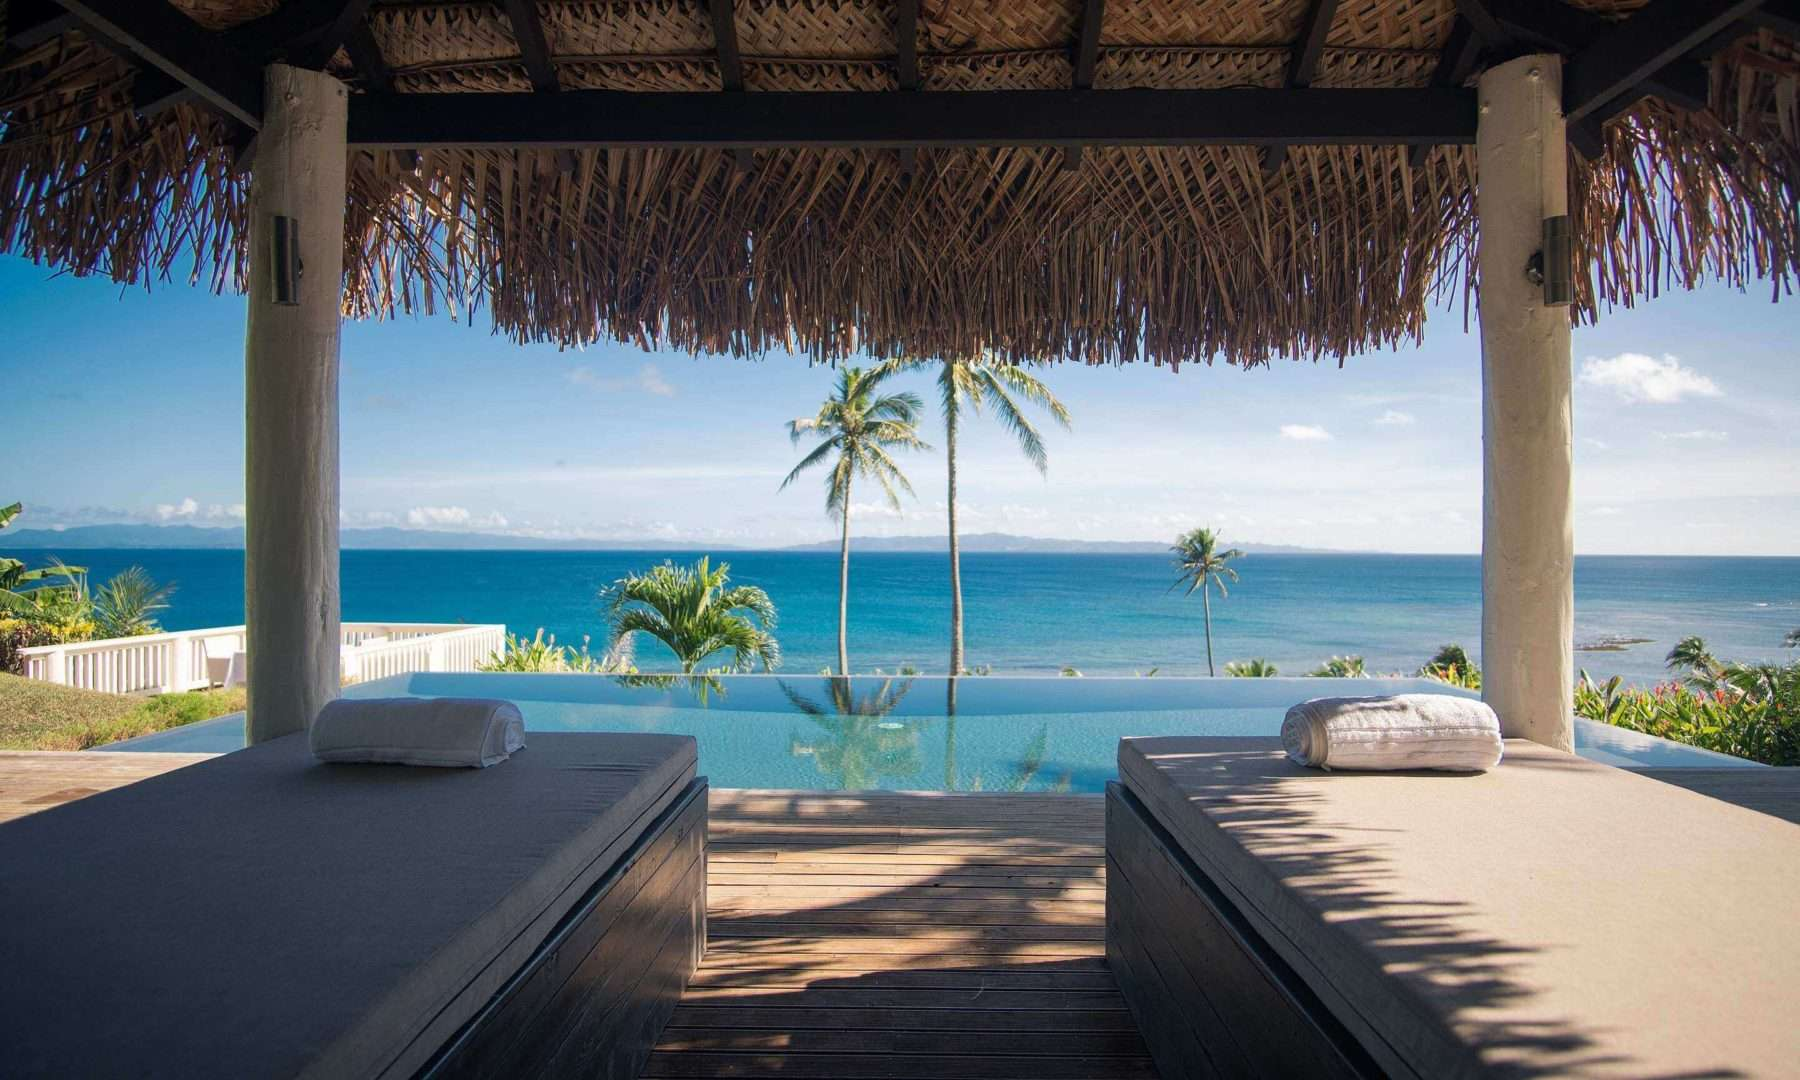 sun loungers by the infinity pool overlooking the sea at Raiwasa Resort Fiji